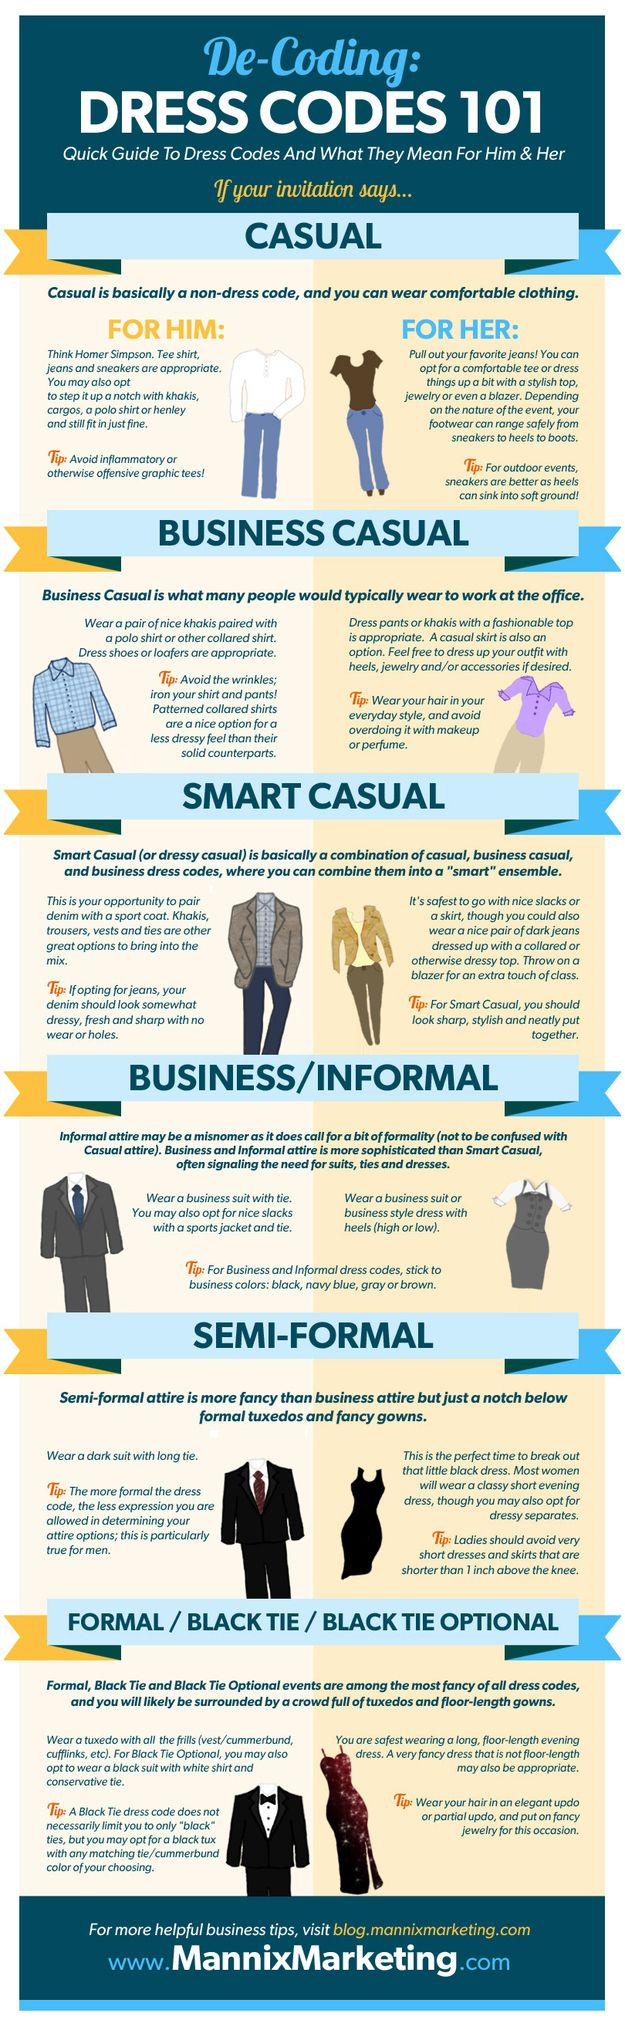 Learn to decode a dress code.